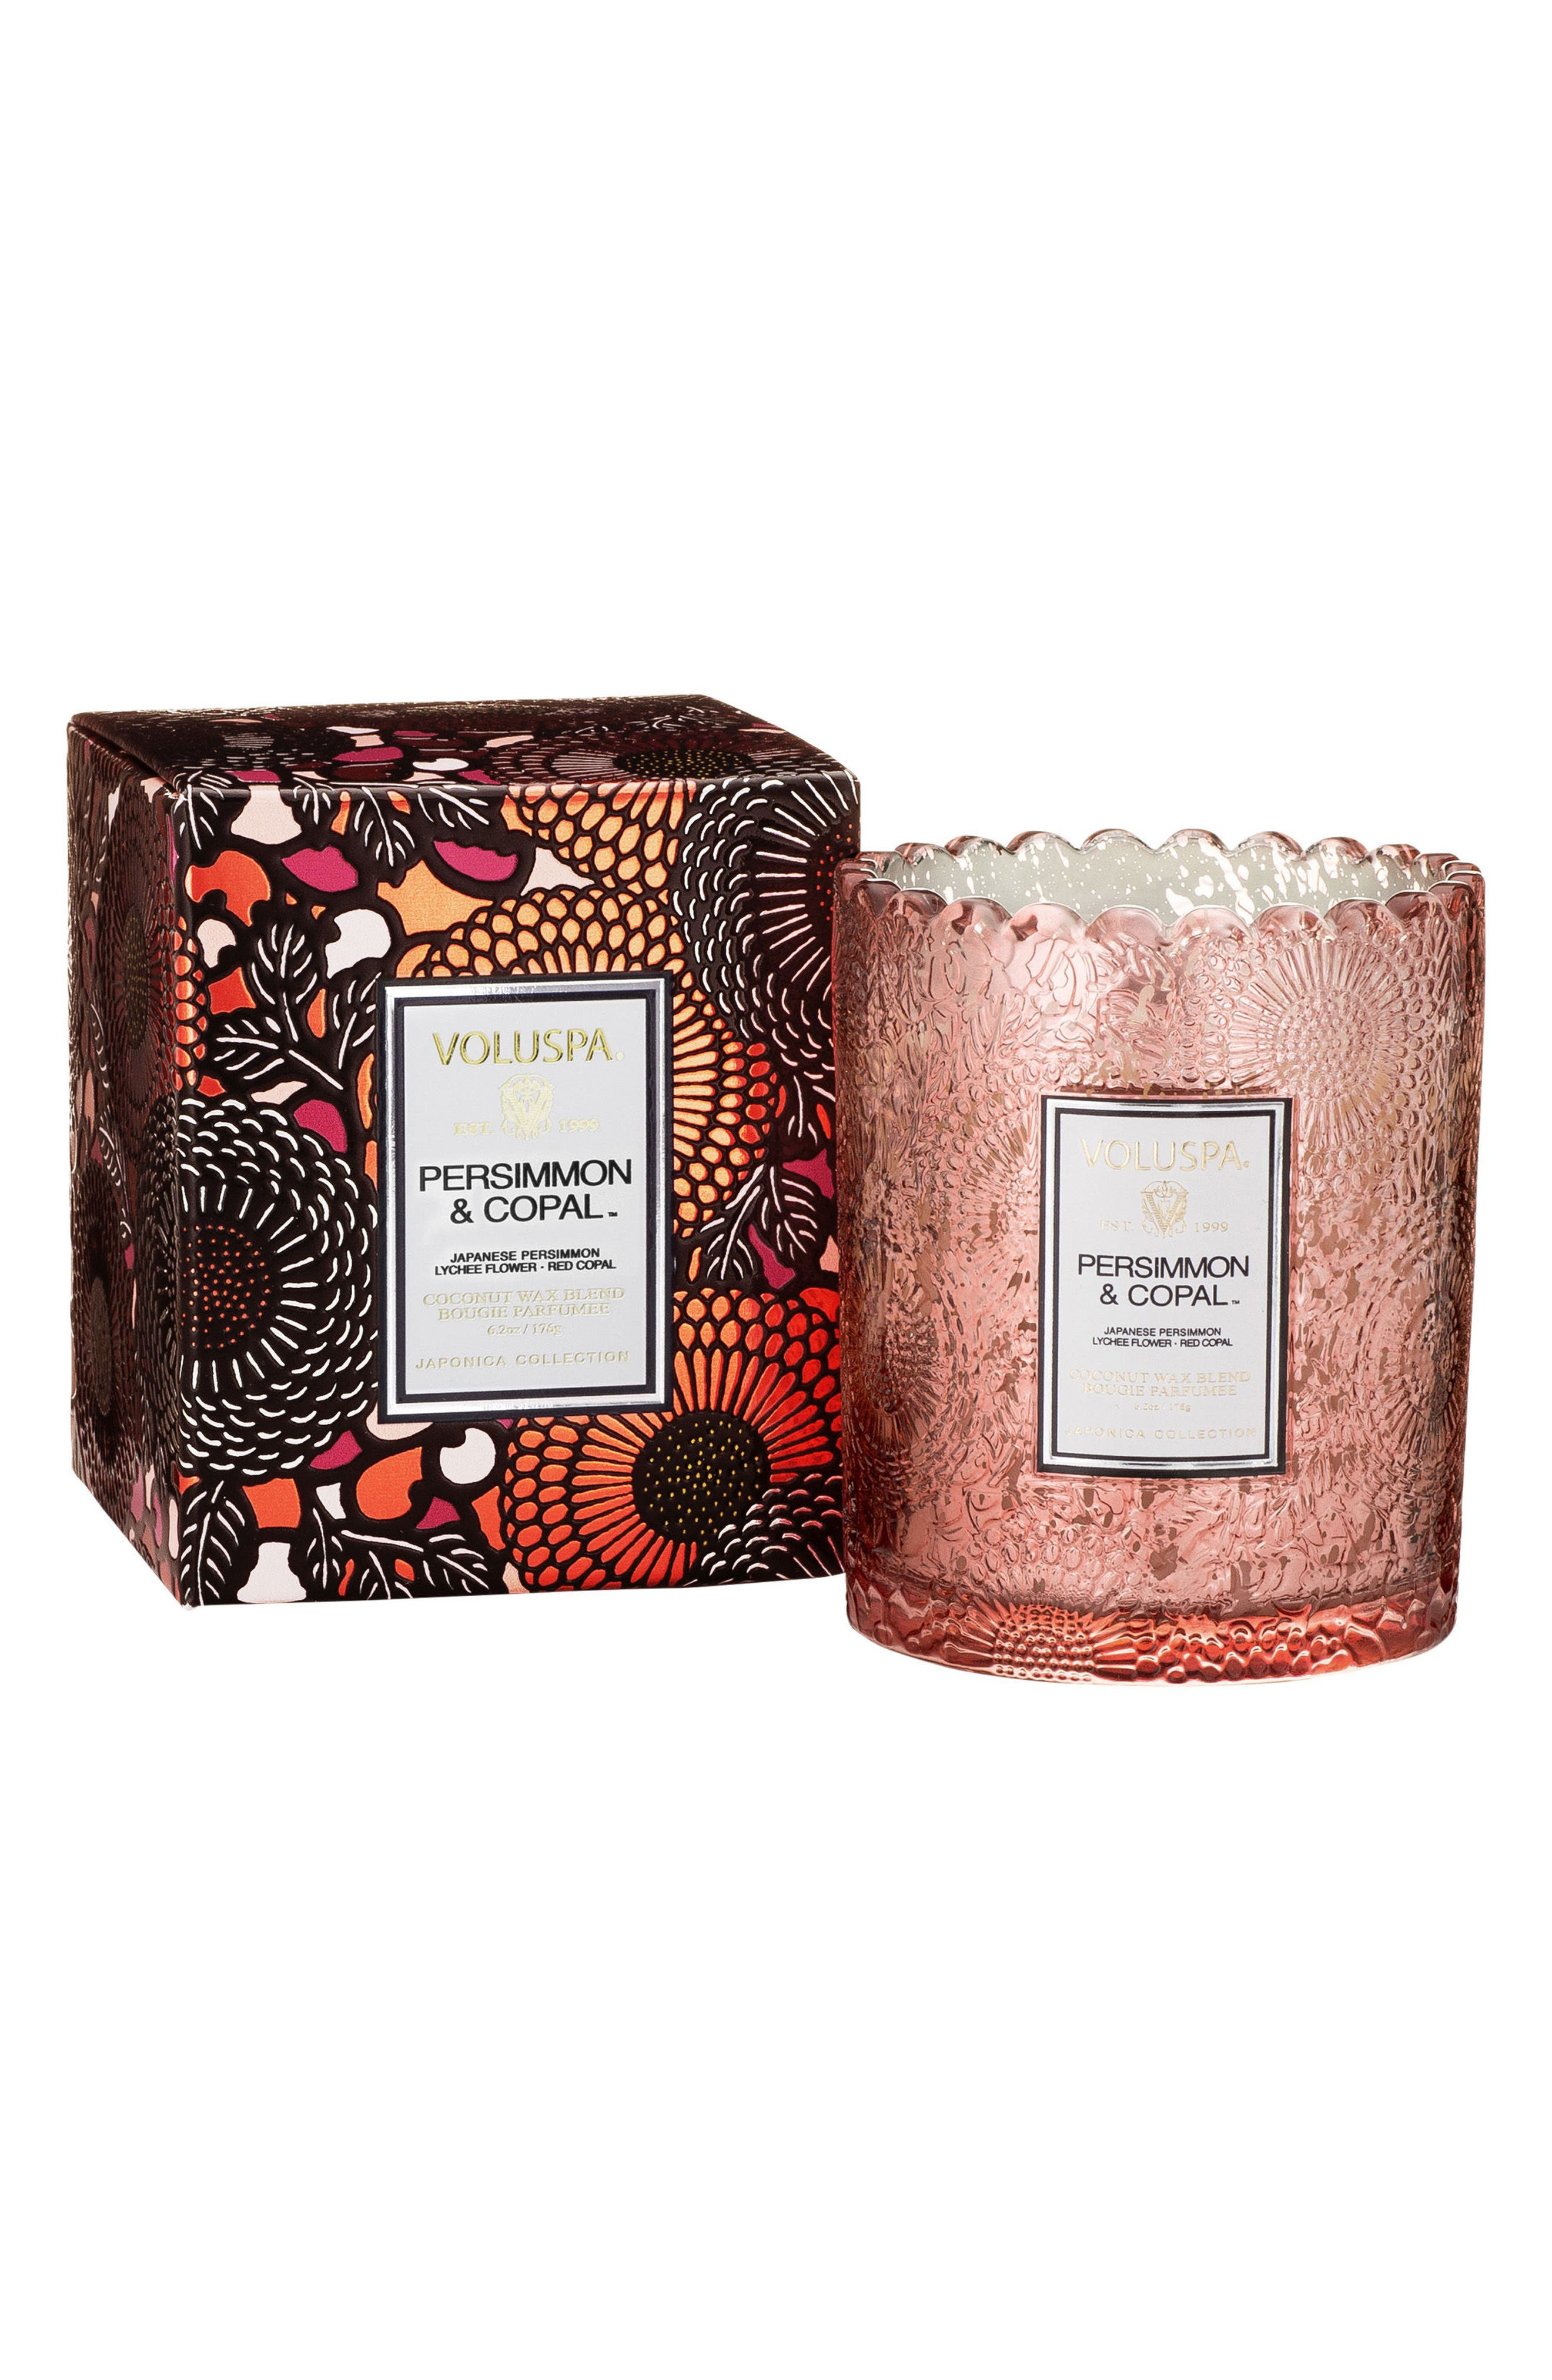 Japonica - Persimmon & Copal Scalloped Edge Glass Candle,                             Main thumbnail 1, color,                             650